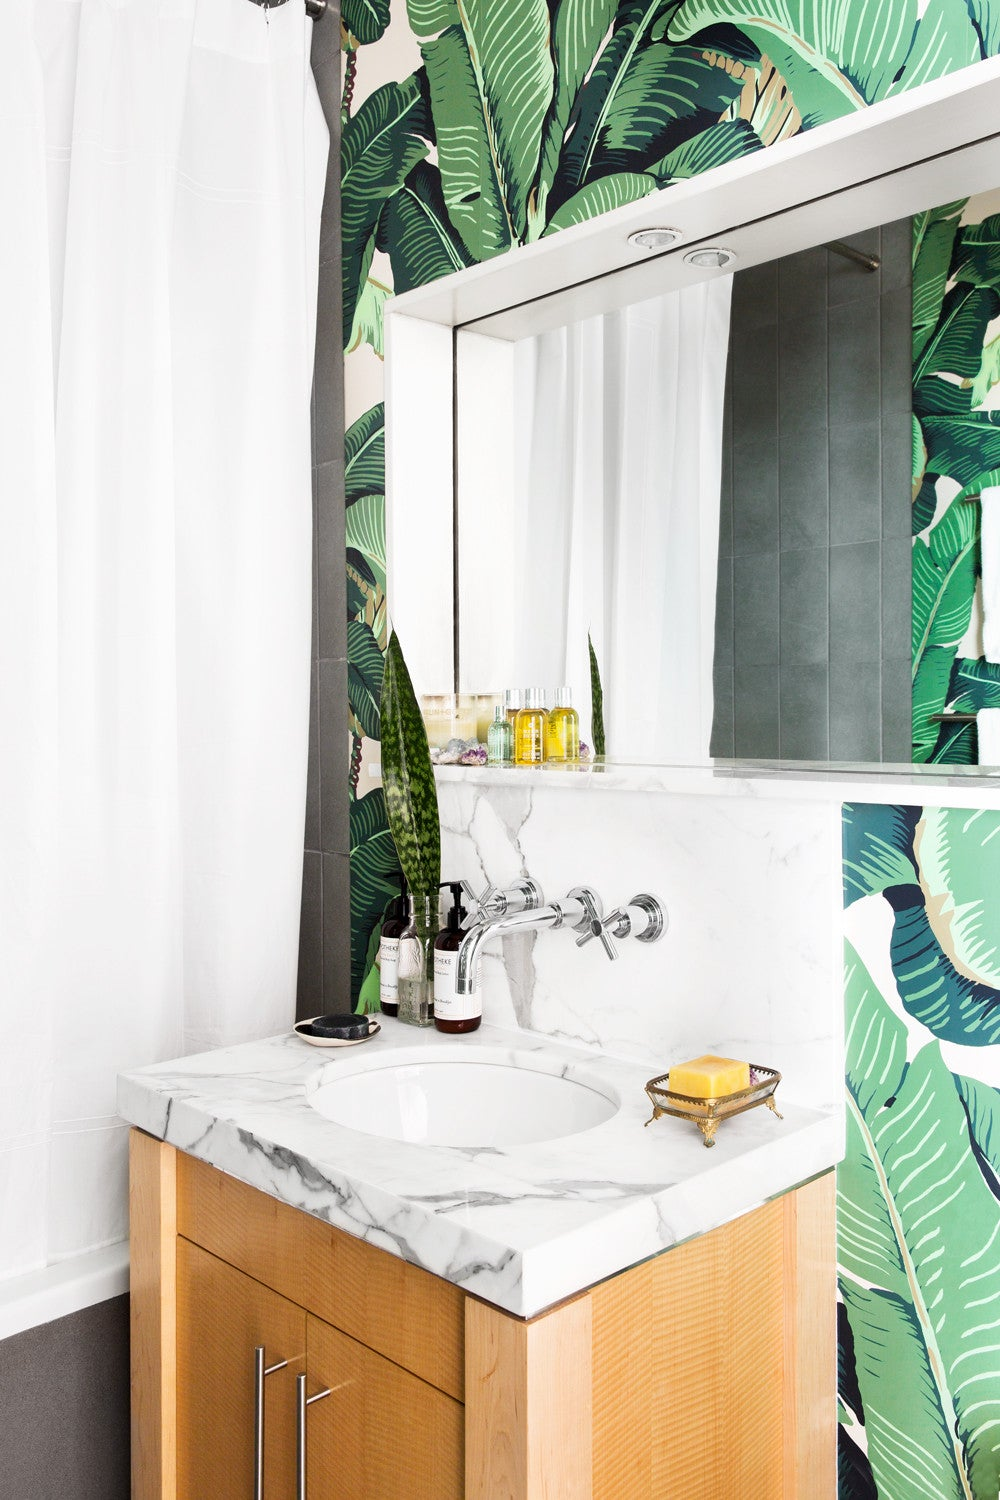 What to Expect When Planning a Bathroom Renovation